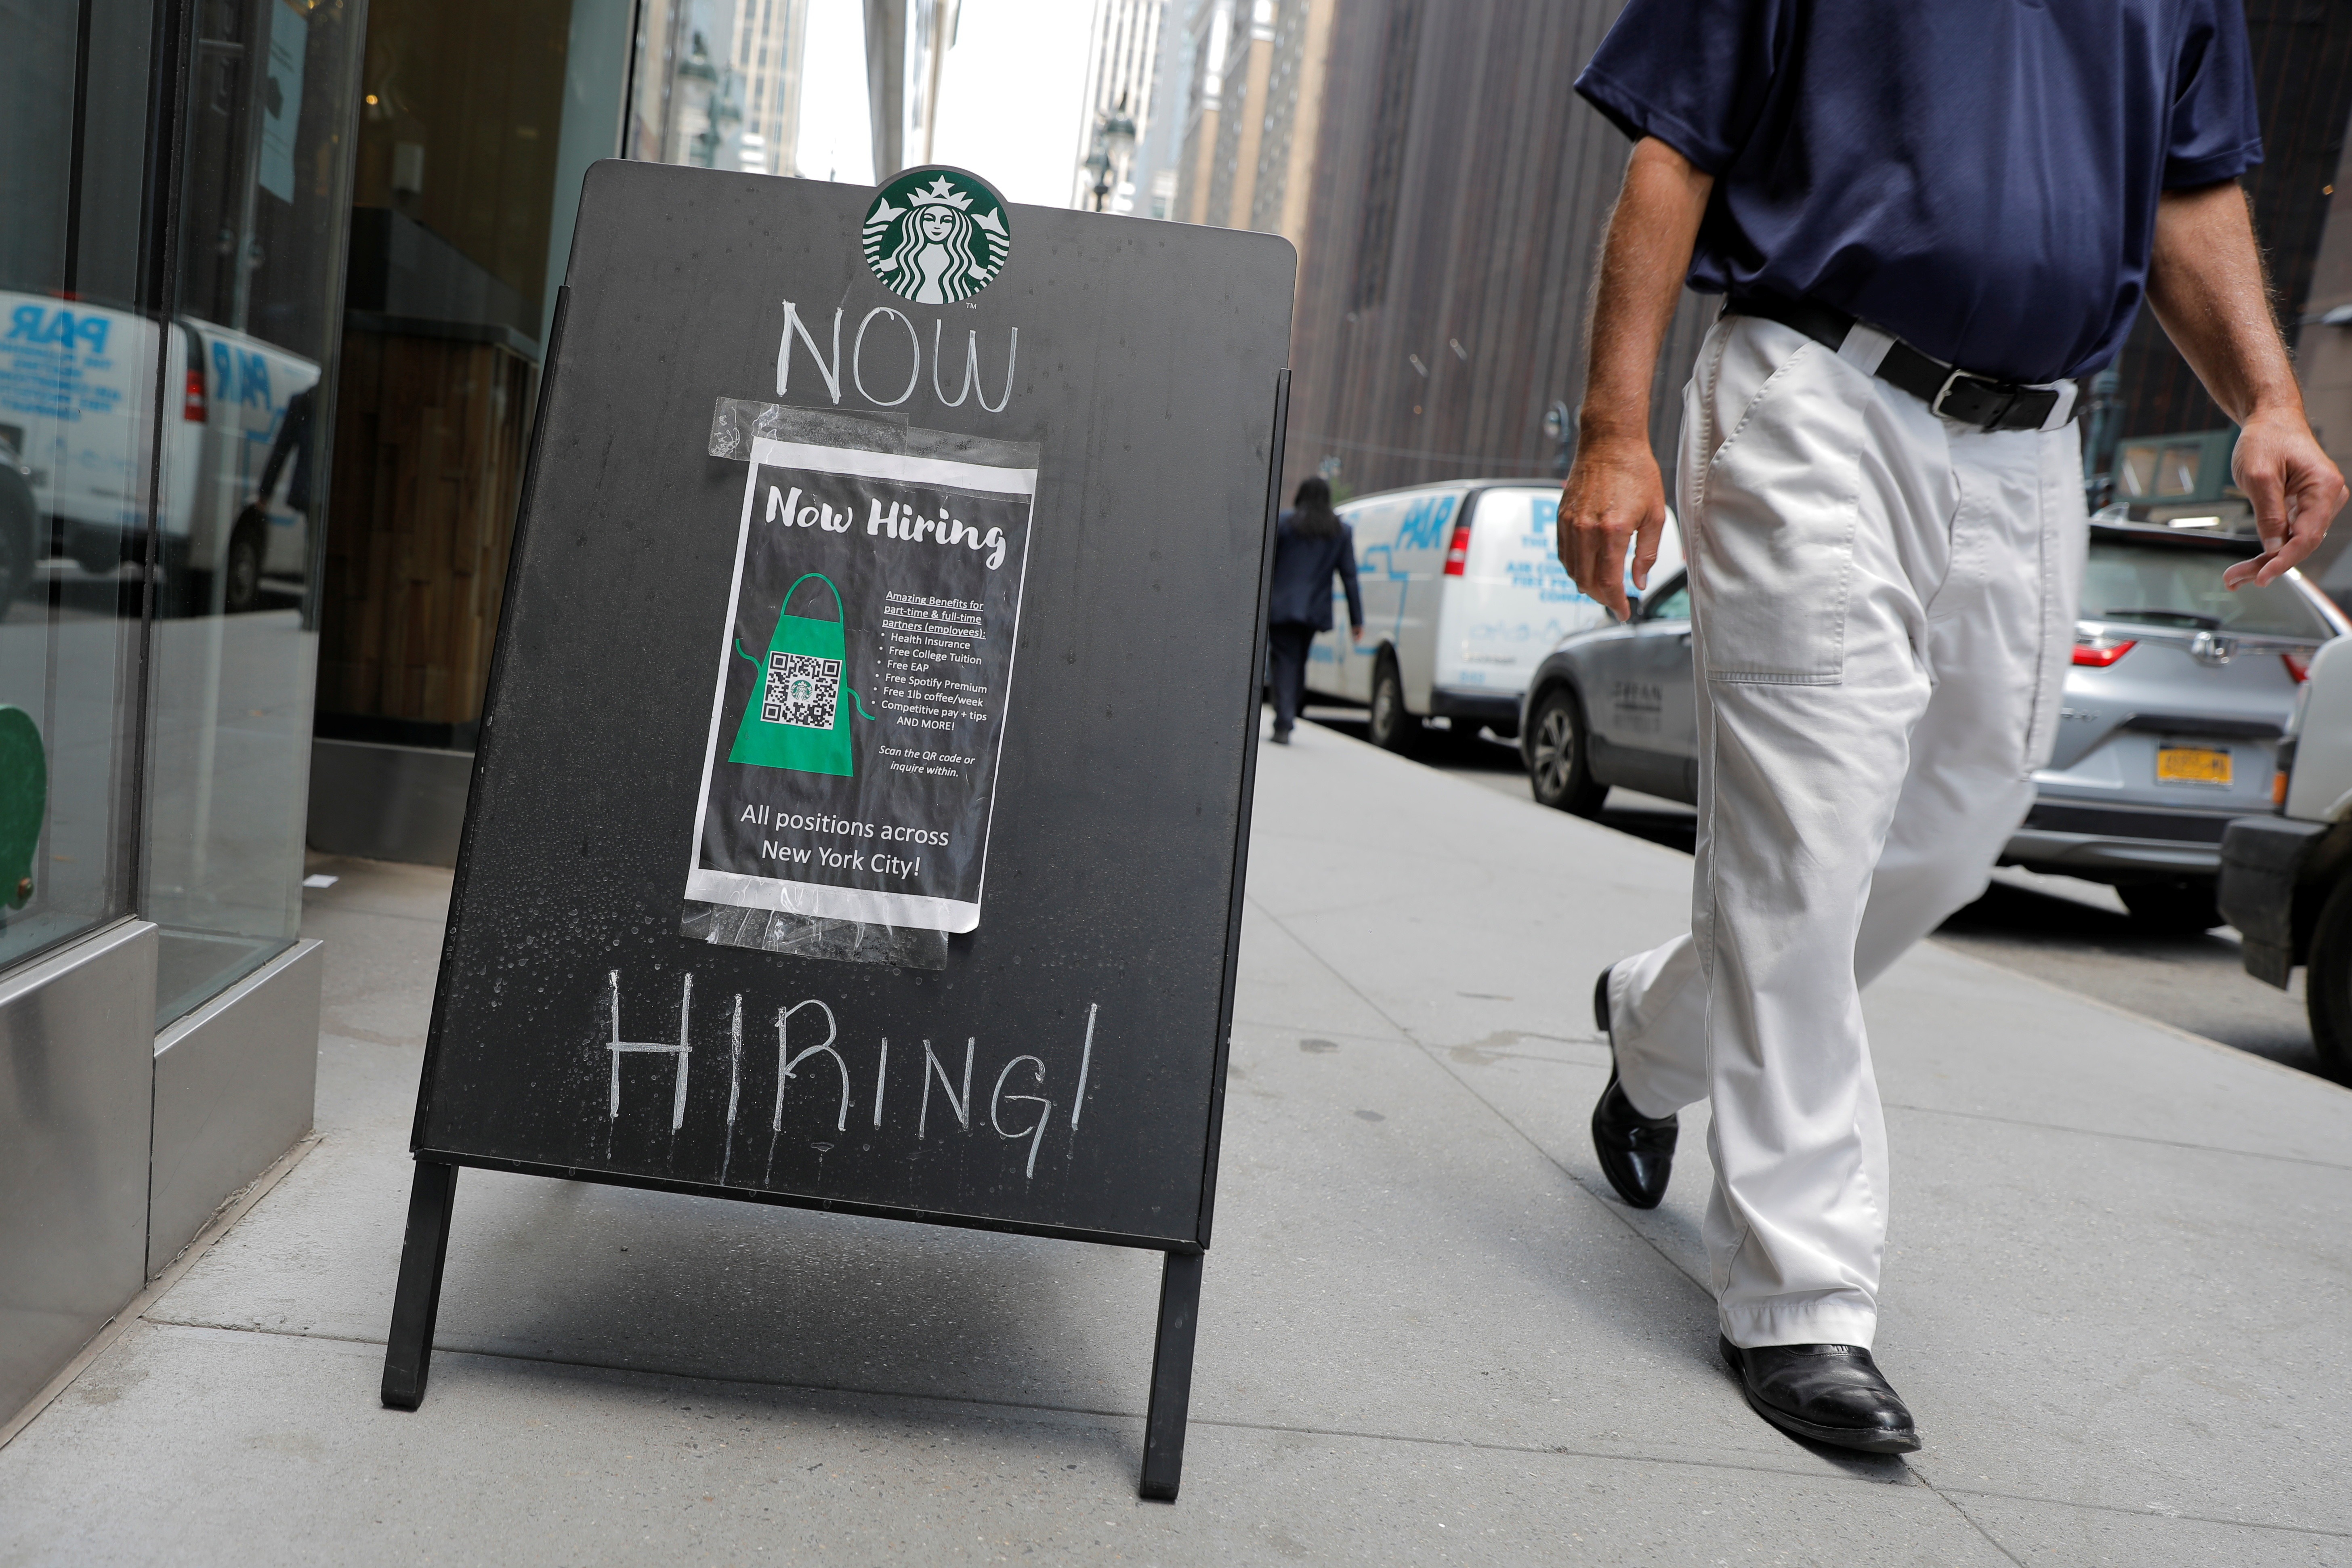 A sign advertising job openings is seen outside of a Starbucks in Manhattan, New York City, New York, U.S., May 26, 2021. REUTERS/Andrew Kelly - RC2SNN93868V